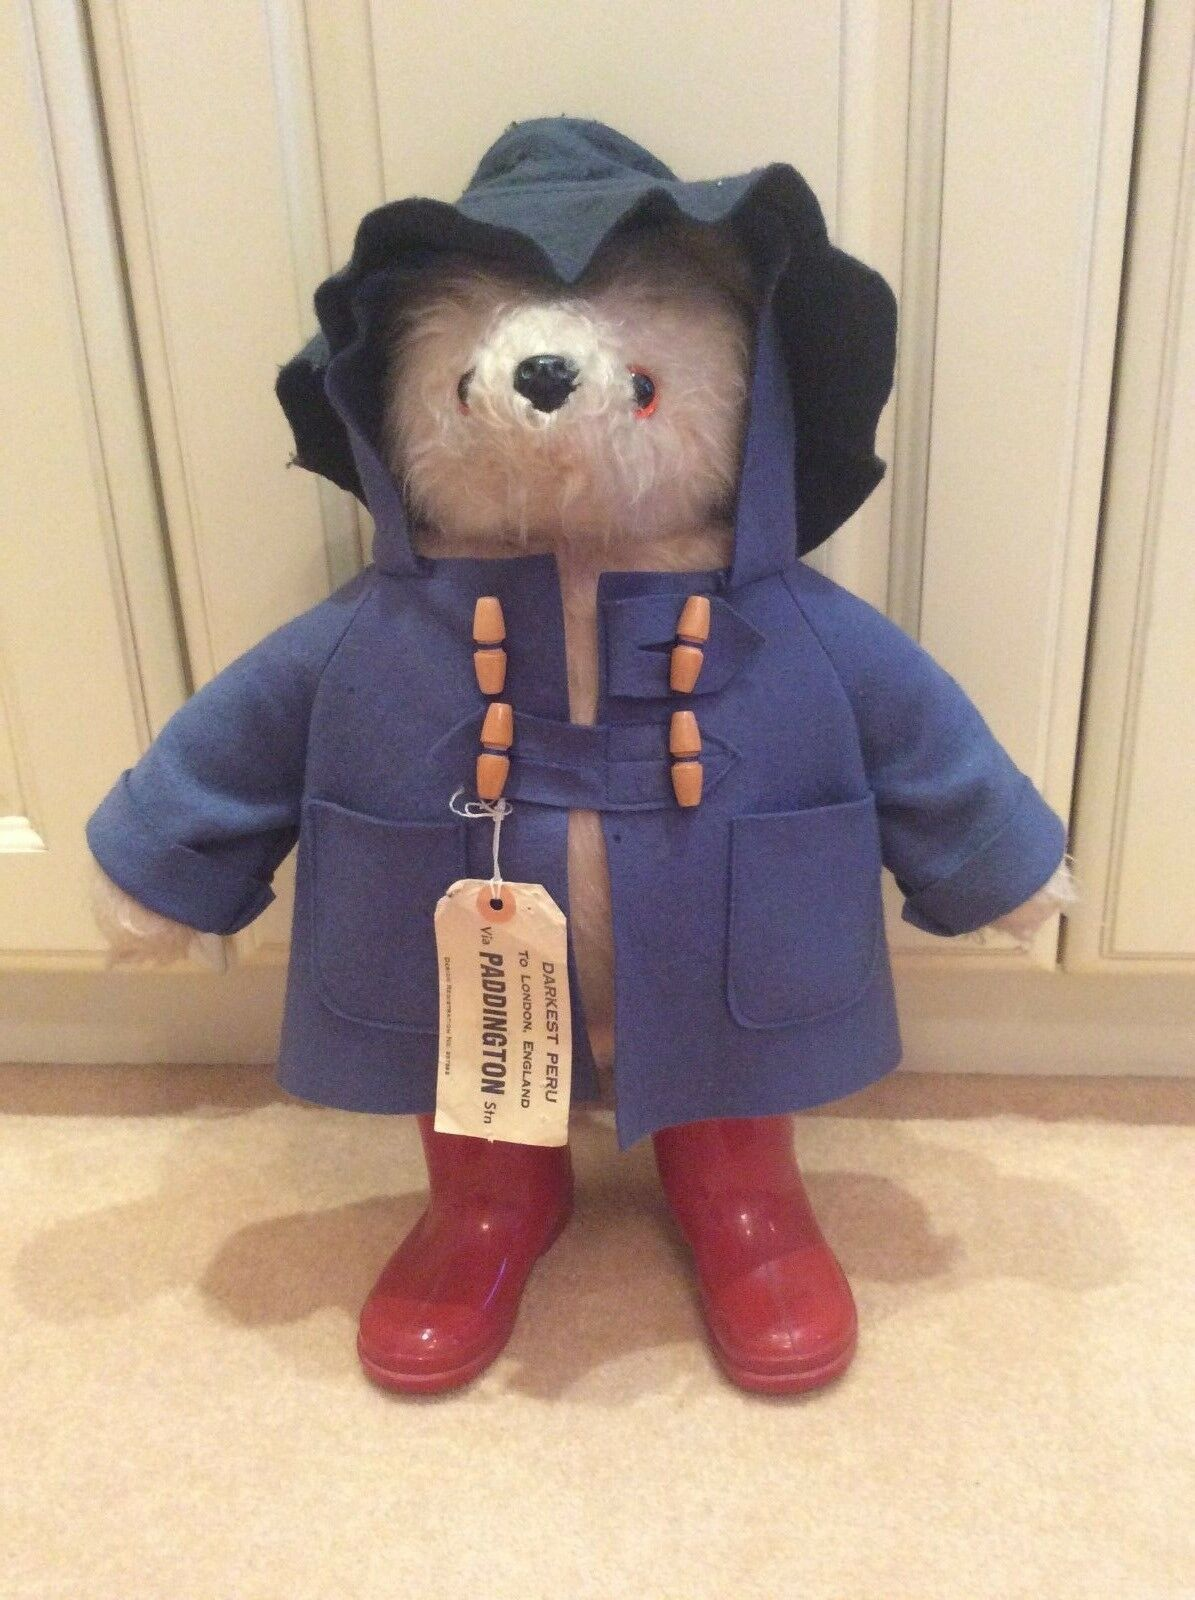 Gabrielle Designs Vintage Paddington Bear - Very Collectable